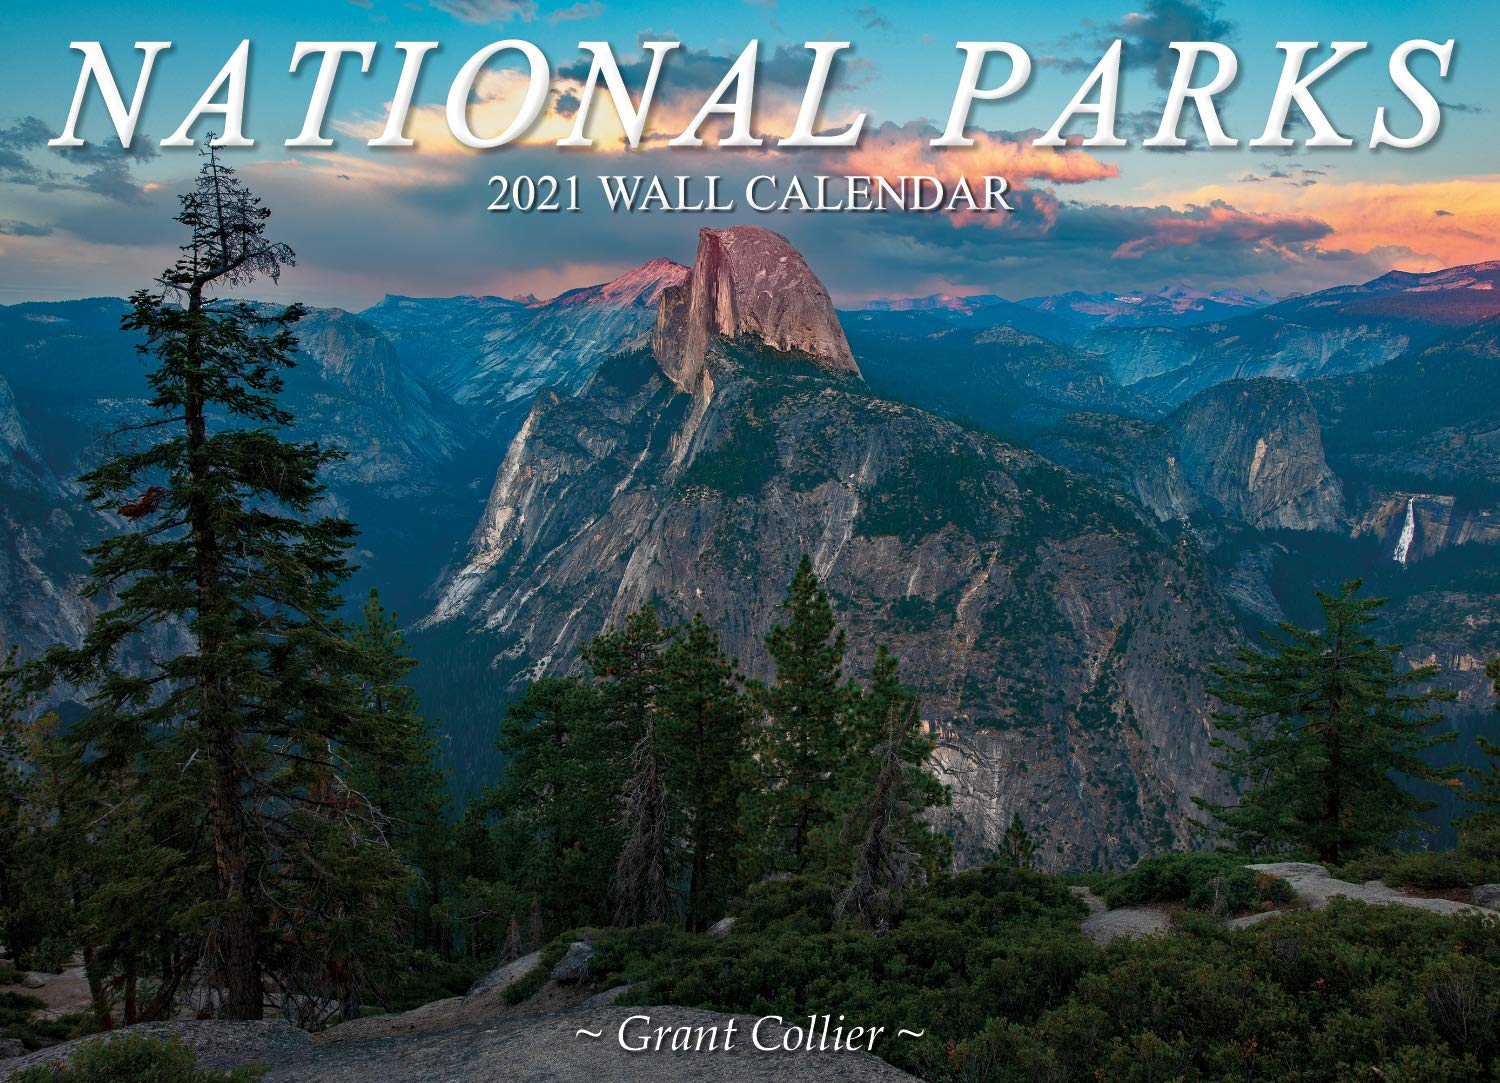 National Parks 2021 Wall Calendar (featuring Yosemite, Arches